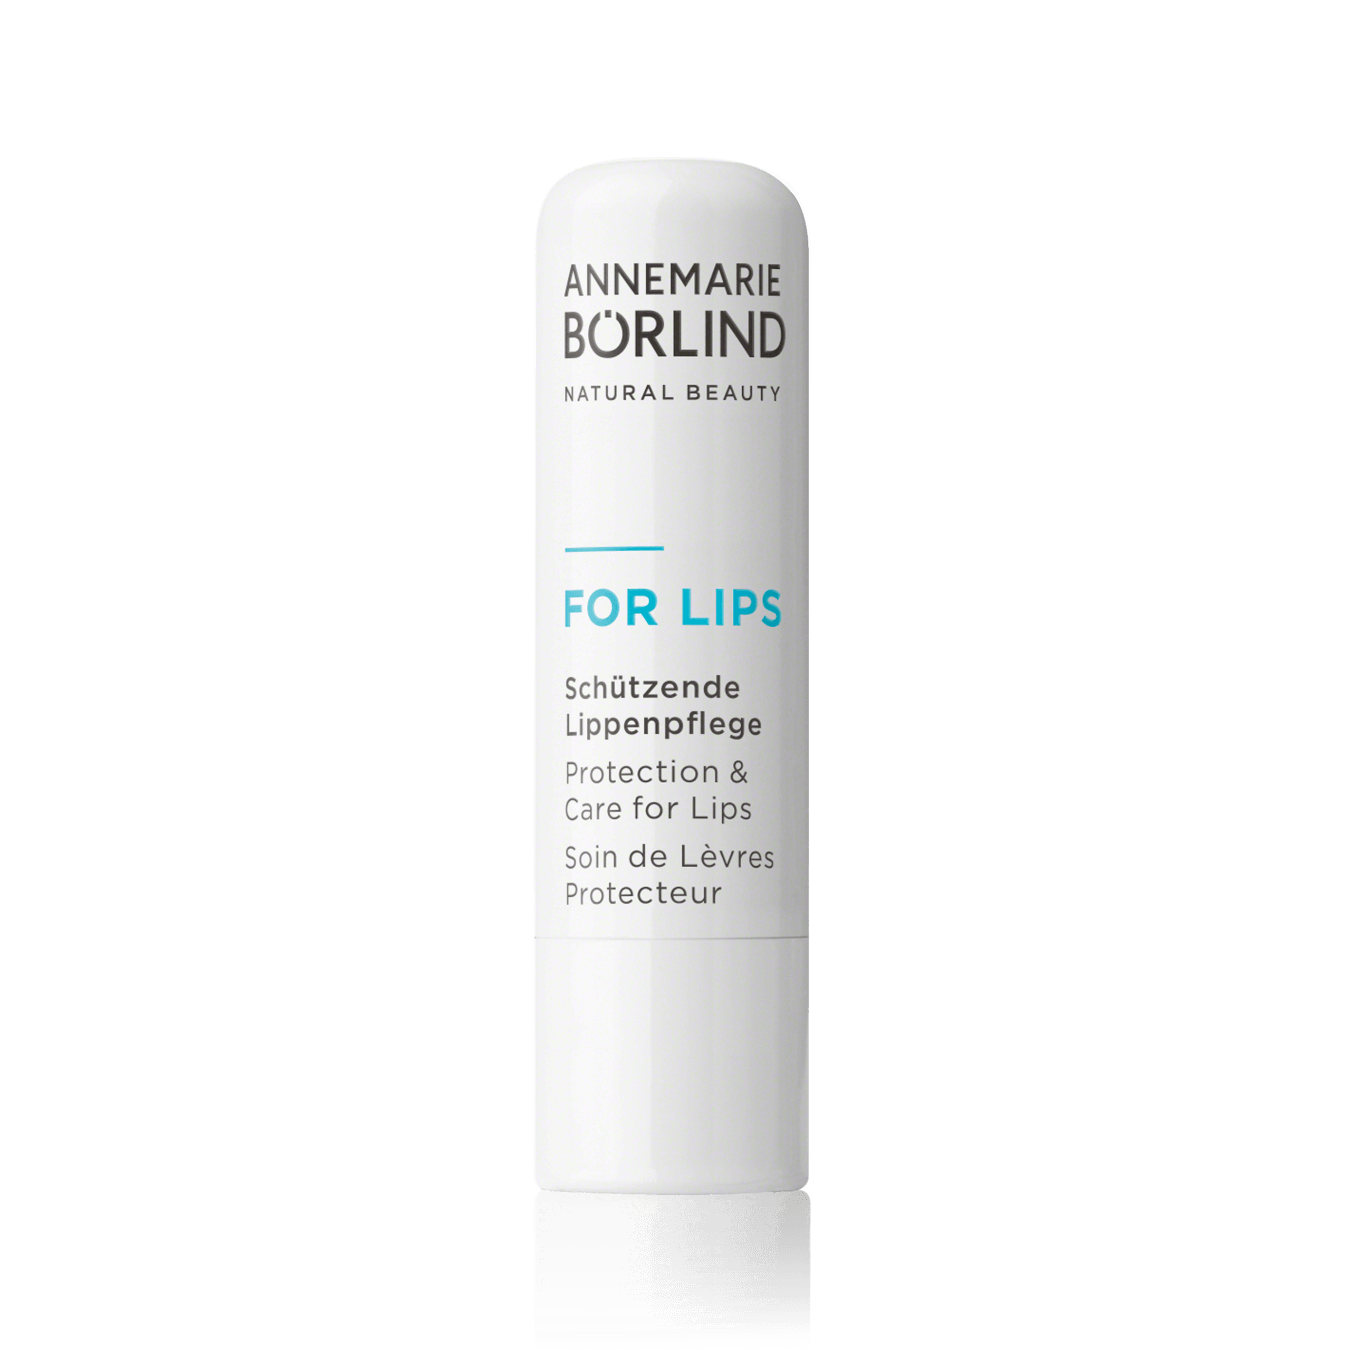 ANNEMARIE BÖRLIND FOR LIPS Protection & Care for Lips